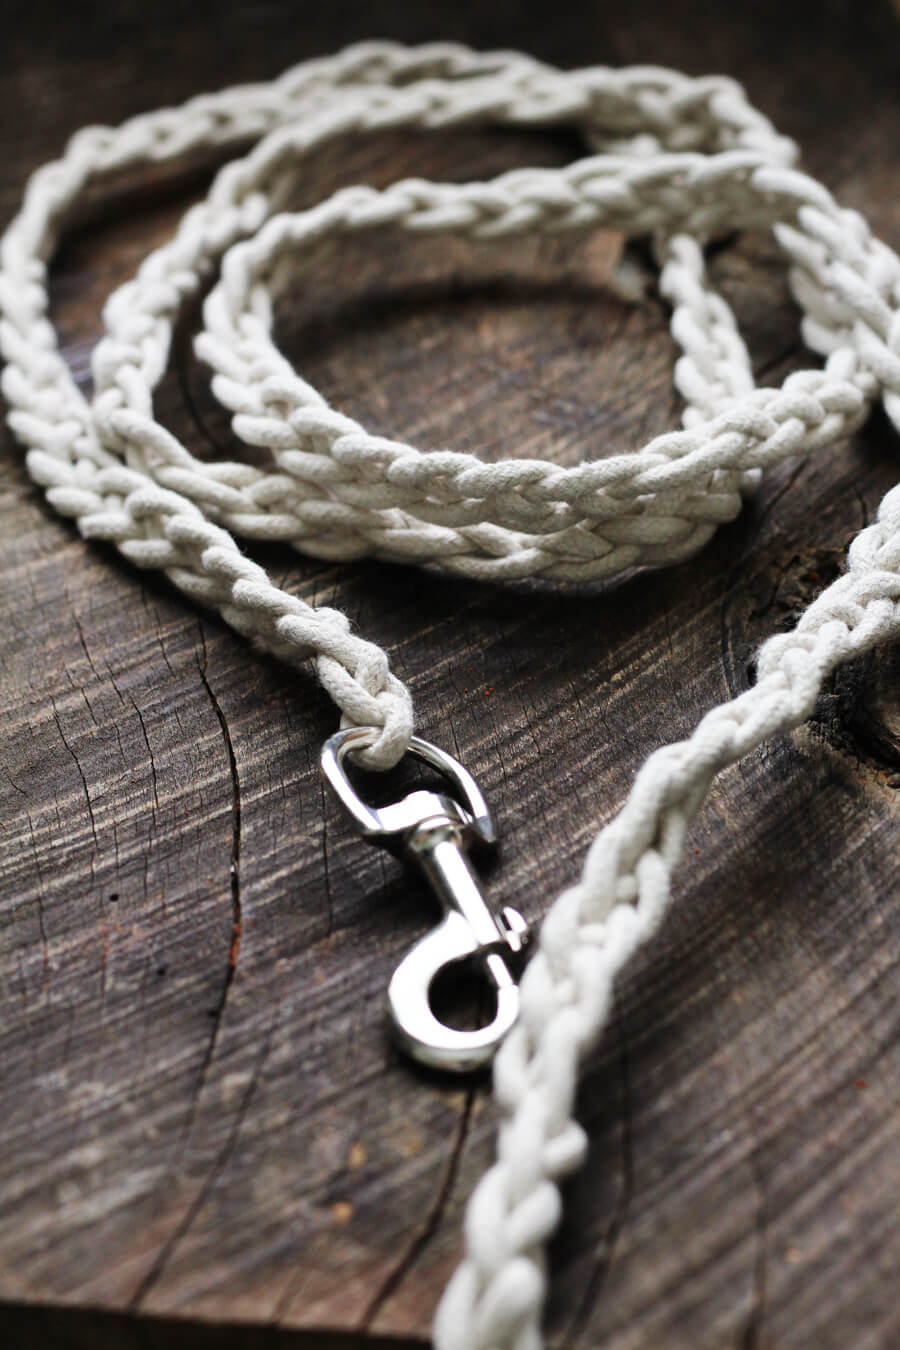 Cotton braided rope dog leash in natural color on a wooden board